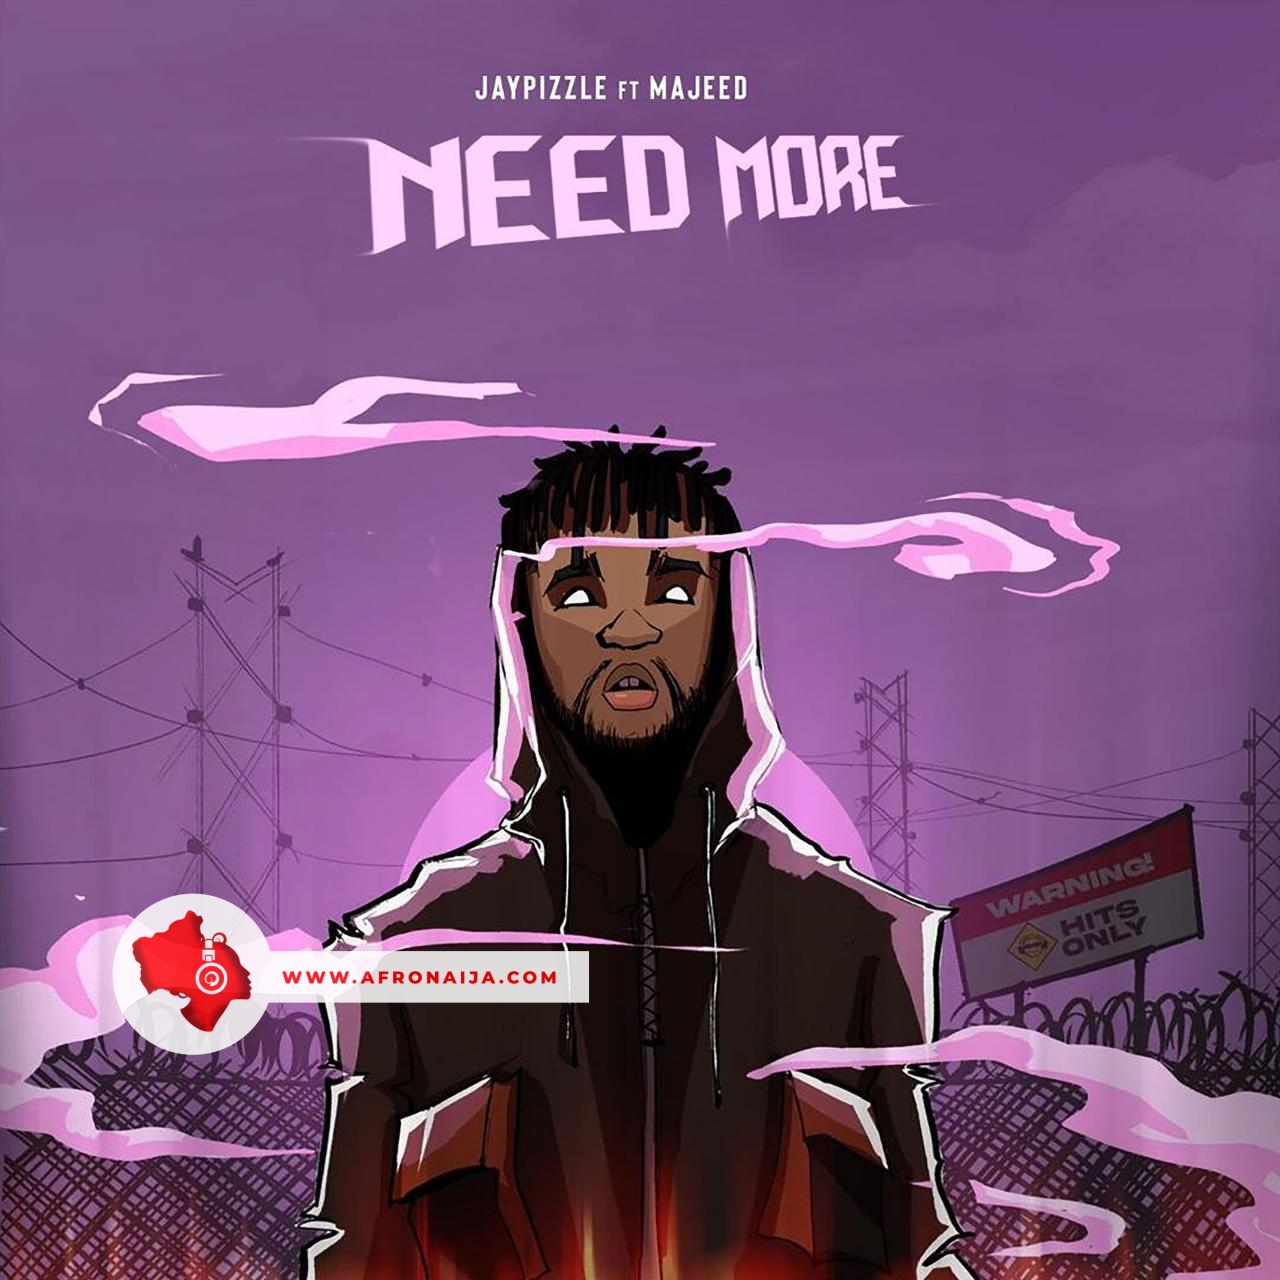 Jaypizzle Ft. Majeed - Need More